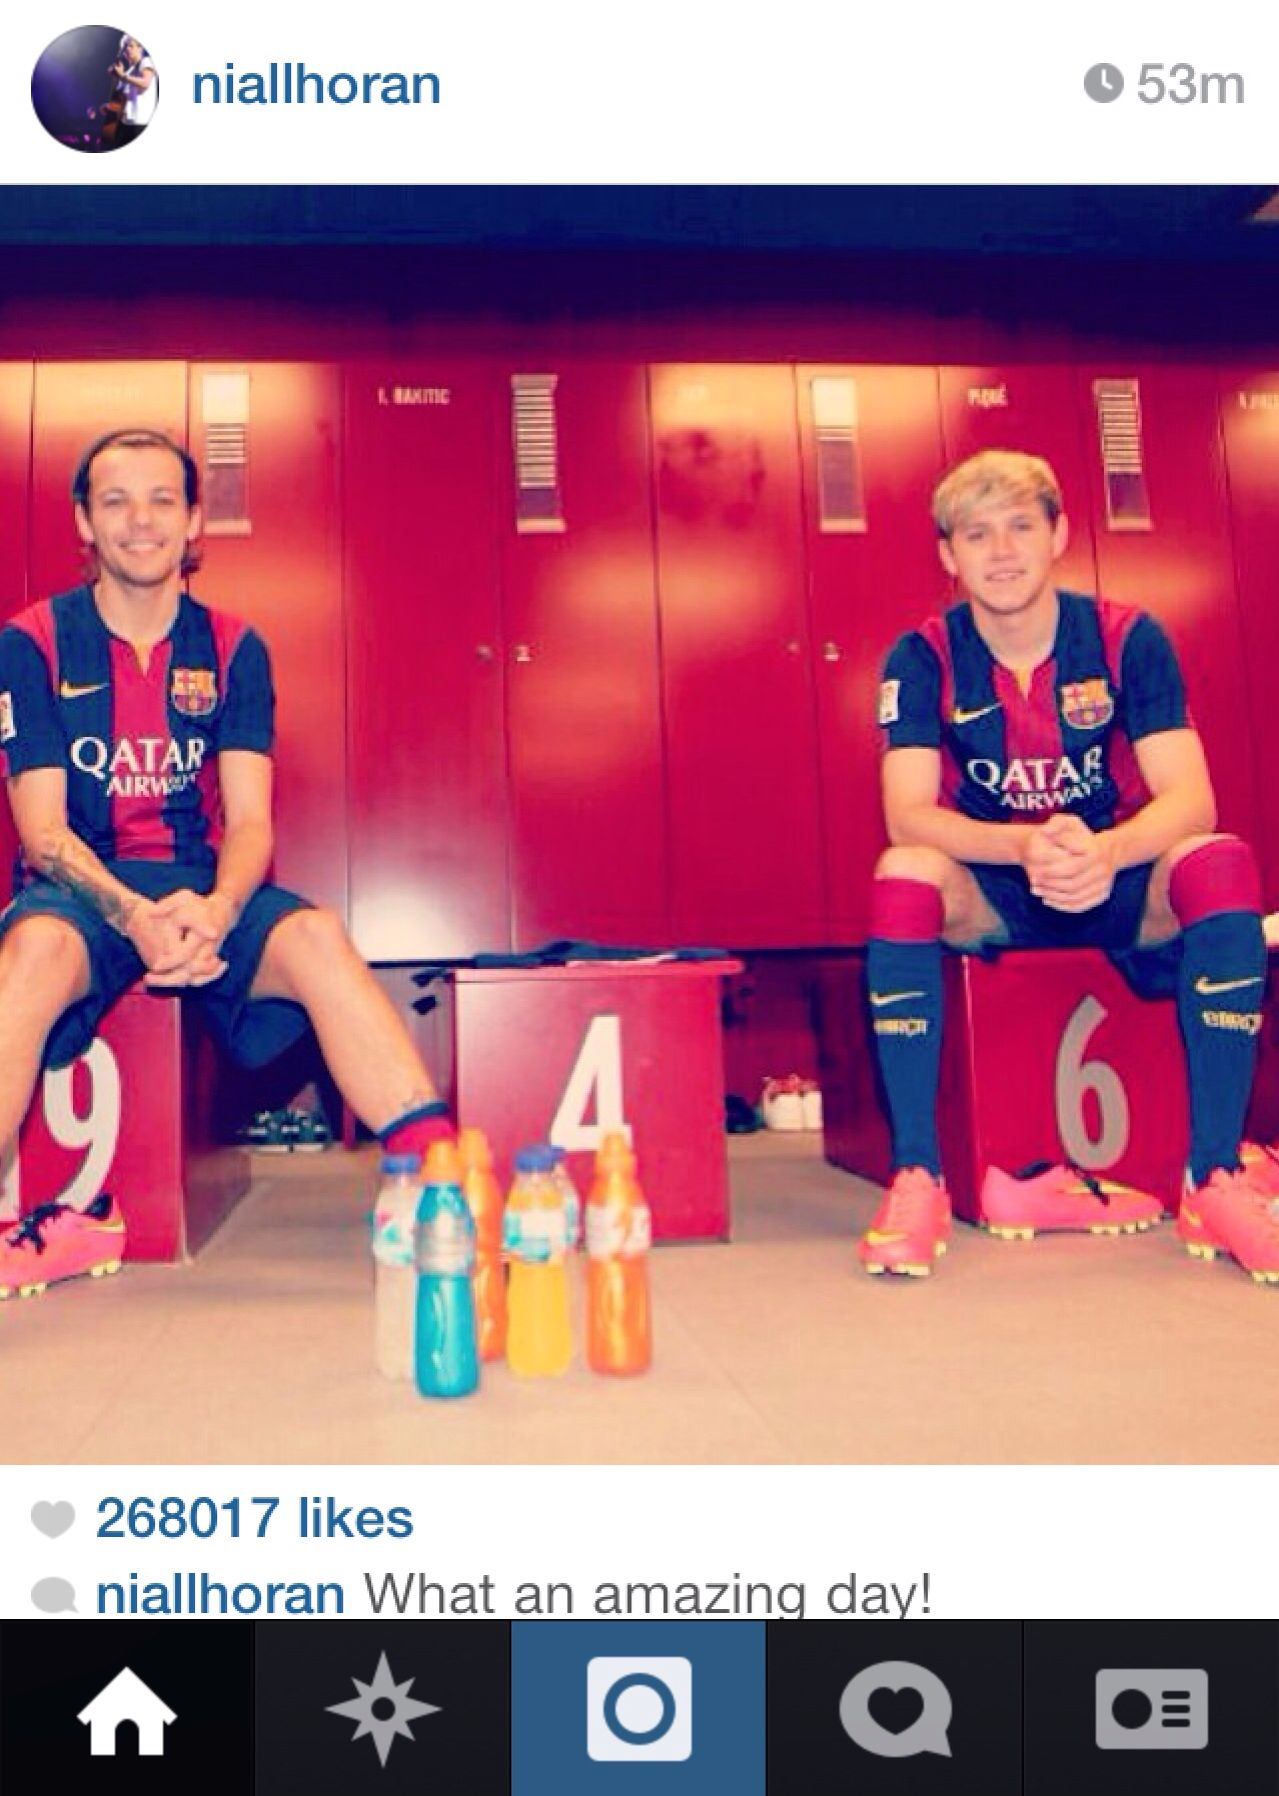 Niall posted this on IG